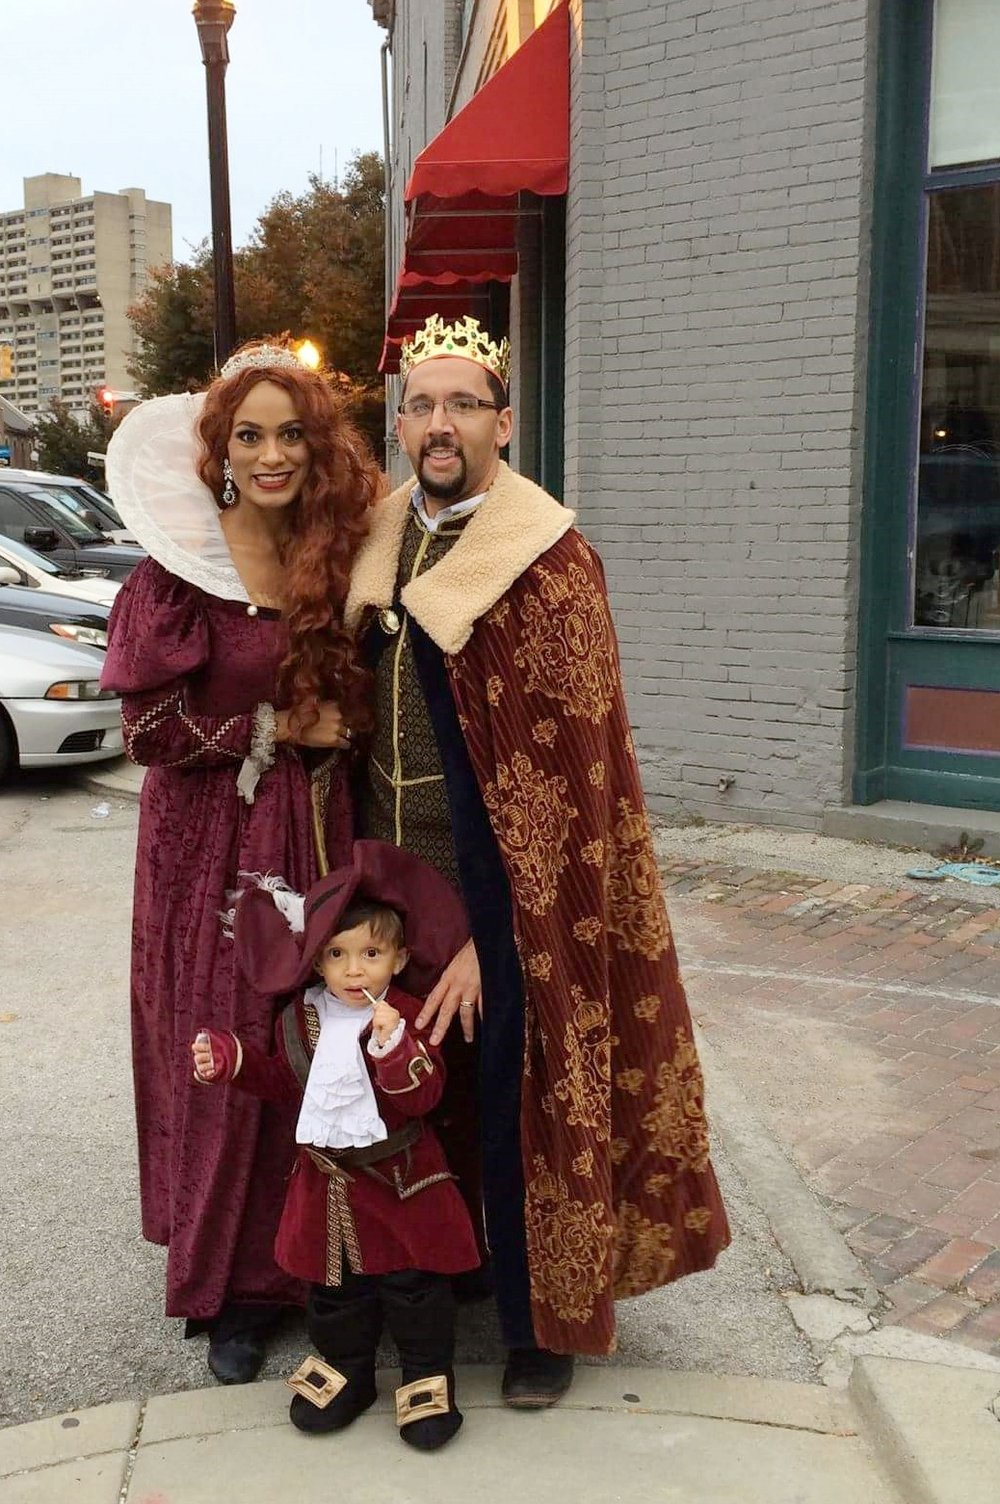 Amy, Kris and their toddler trick-or-treating on Mass Ave in 2016.